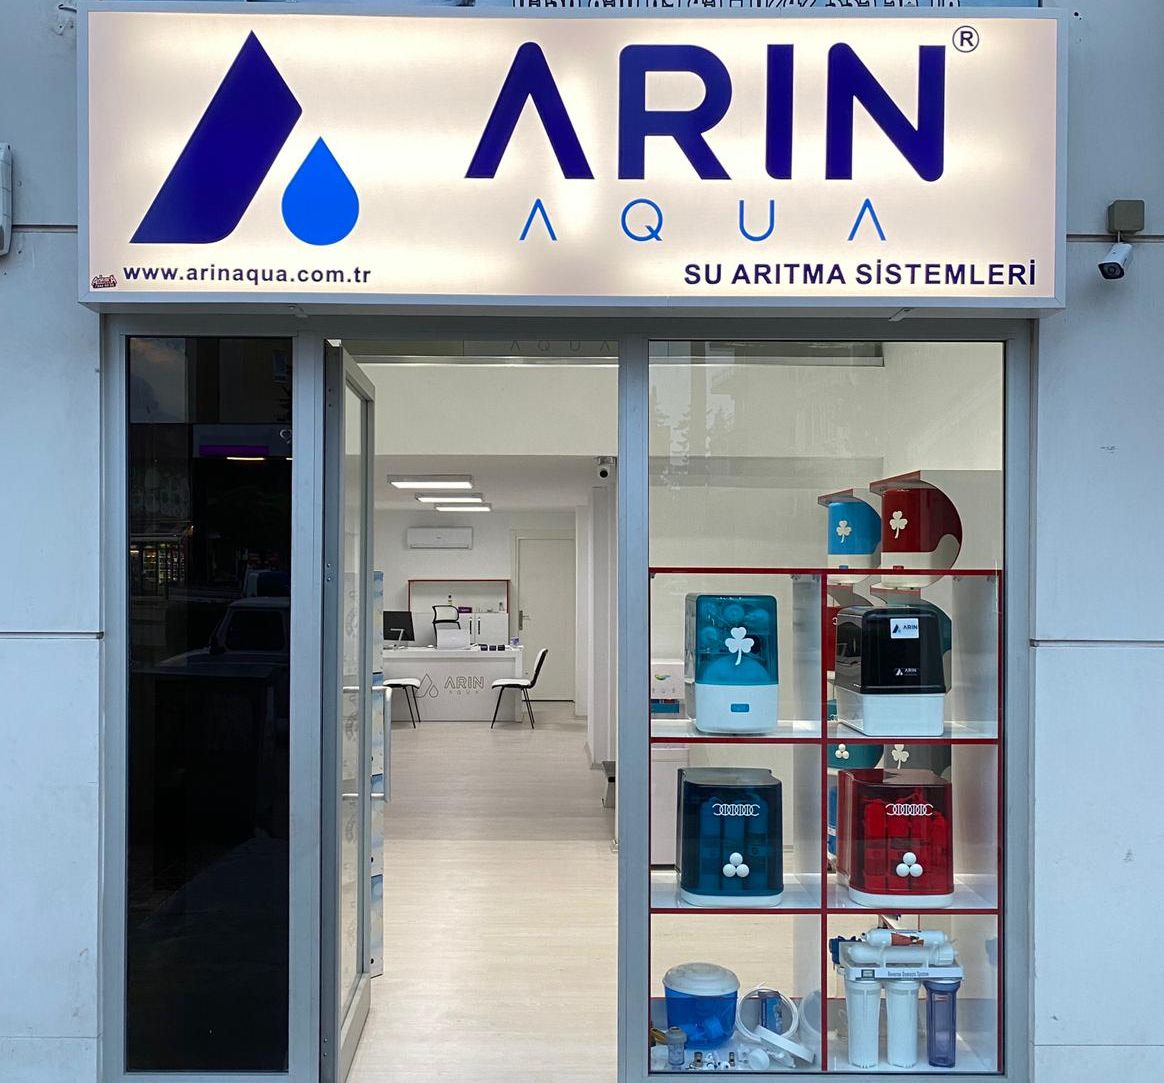 Arın Aqua Water Cleaner For Home and Offıce Don't pay for water to drink anymore WATER TREATMENT SYSTEM READY TO DRINK.